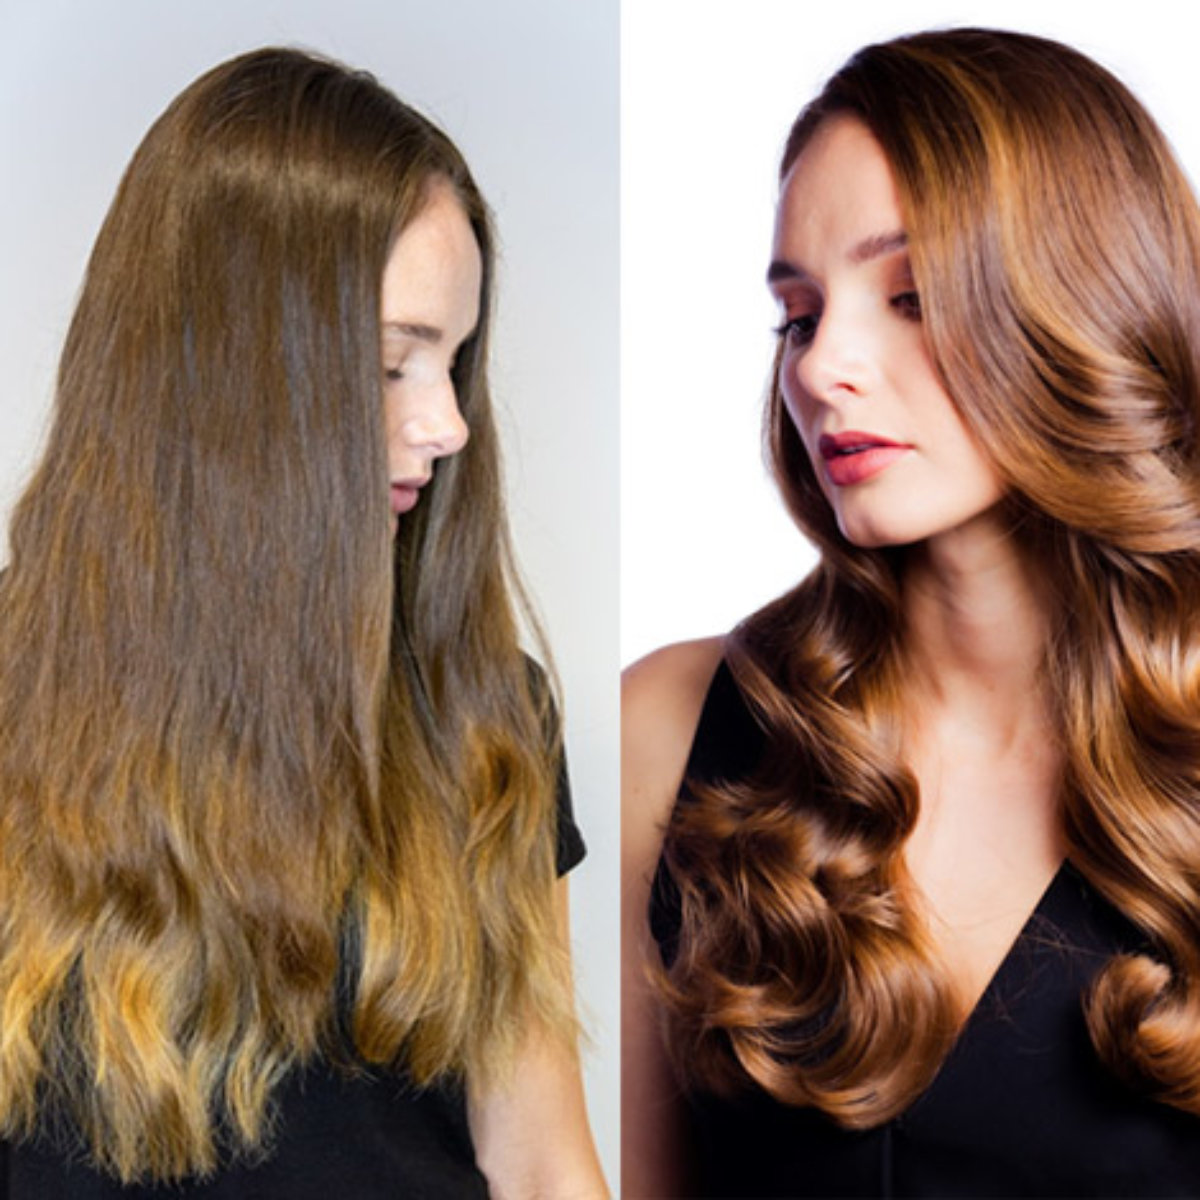 Larisa Love client before and after using Defy Damage hair care